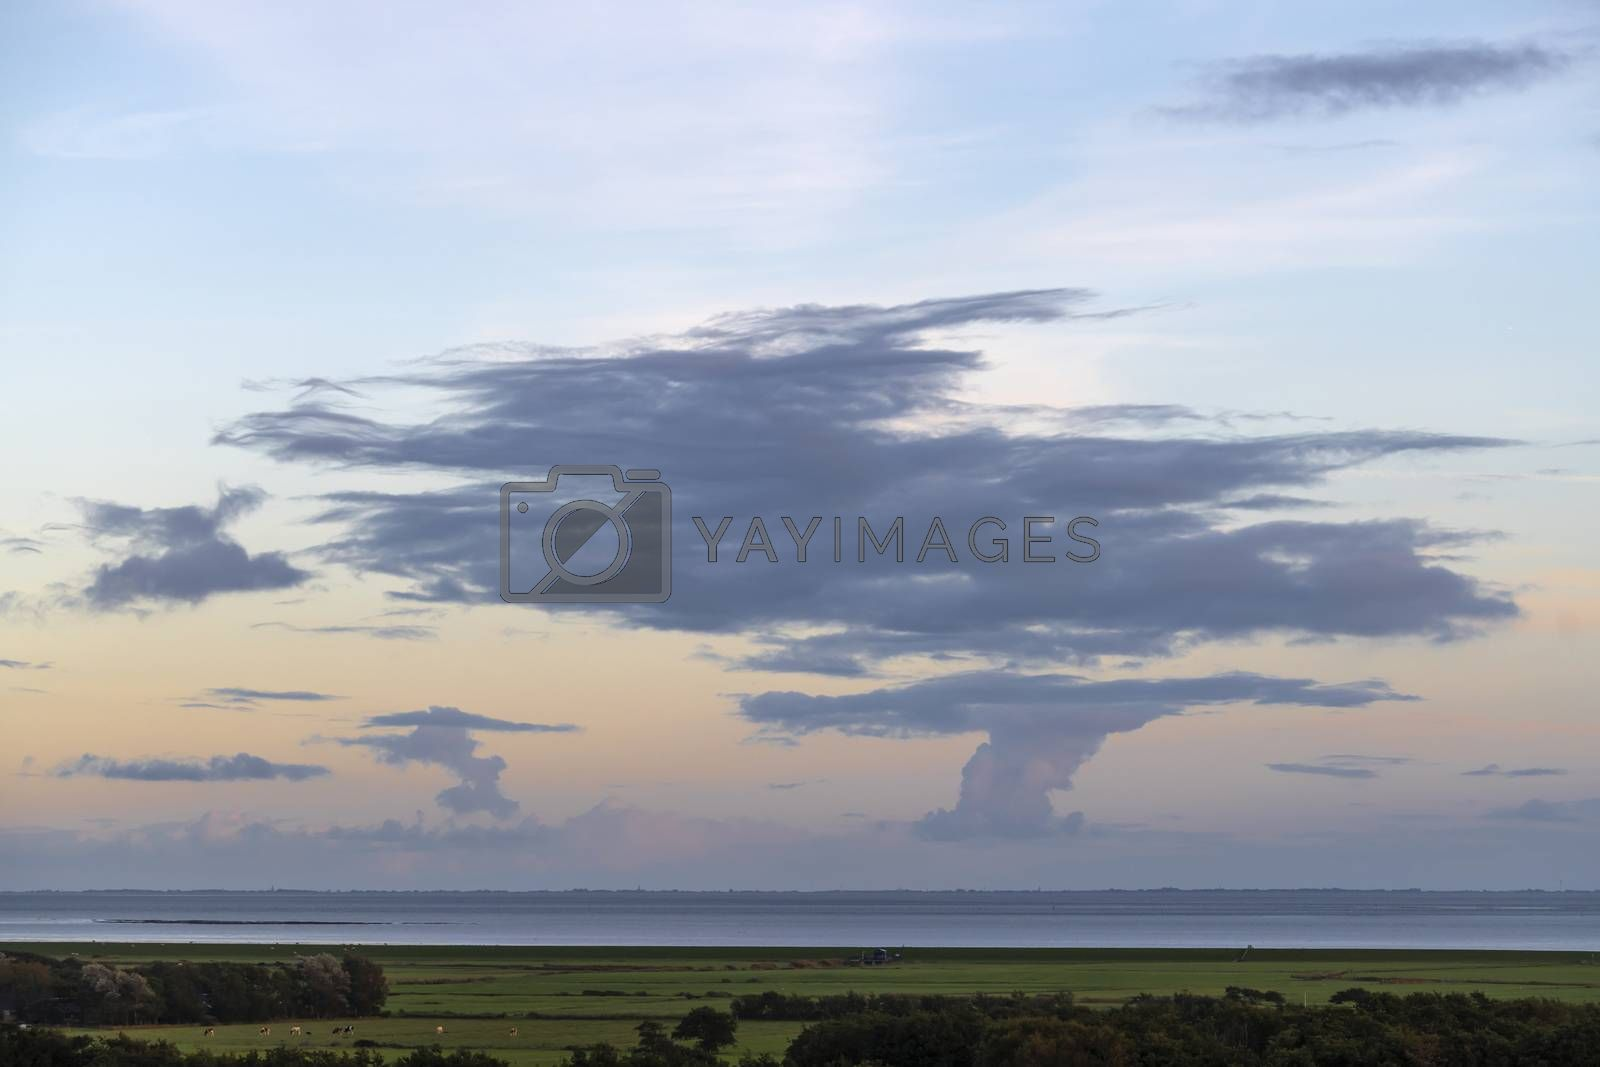 Impressive skies over Friesland as seen from the island of Tersc by Tofotografie